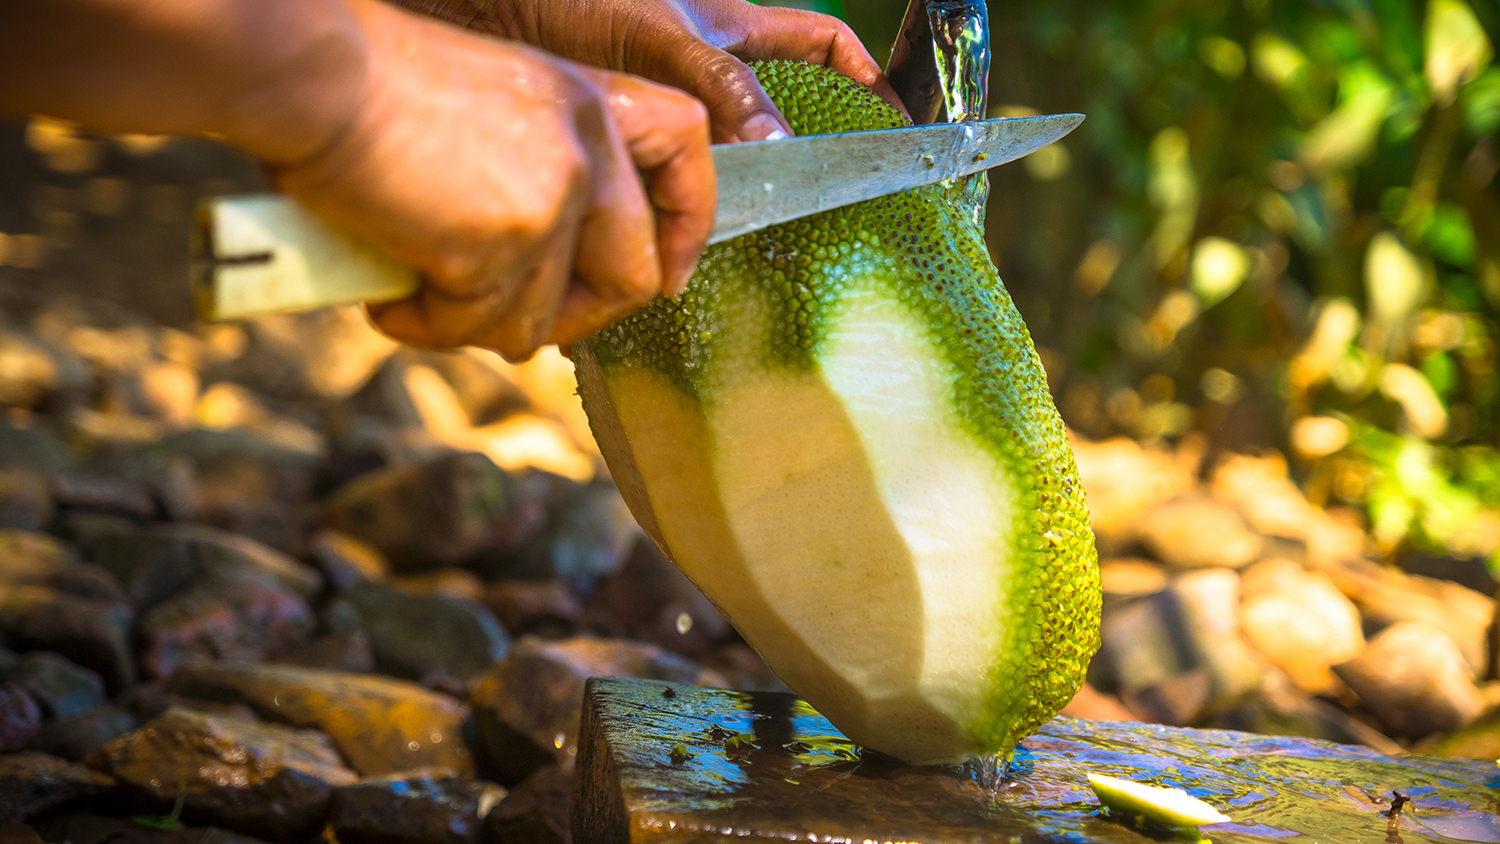 What Does Jackfruit Taste Like?